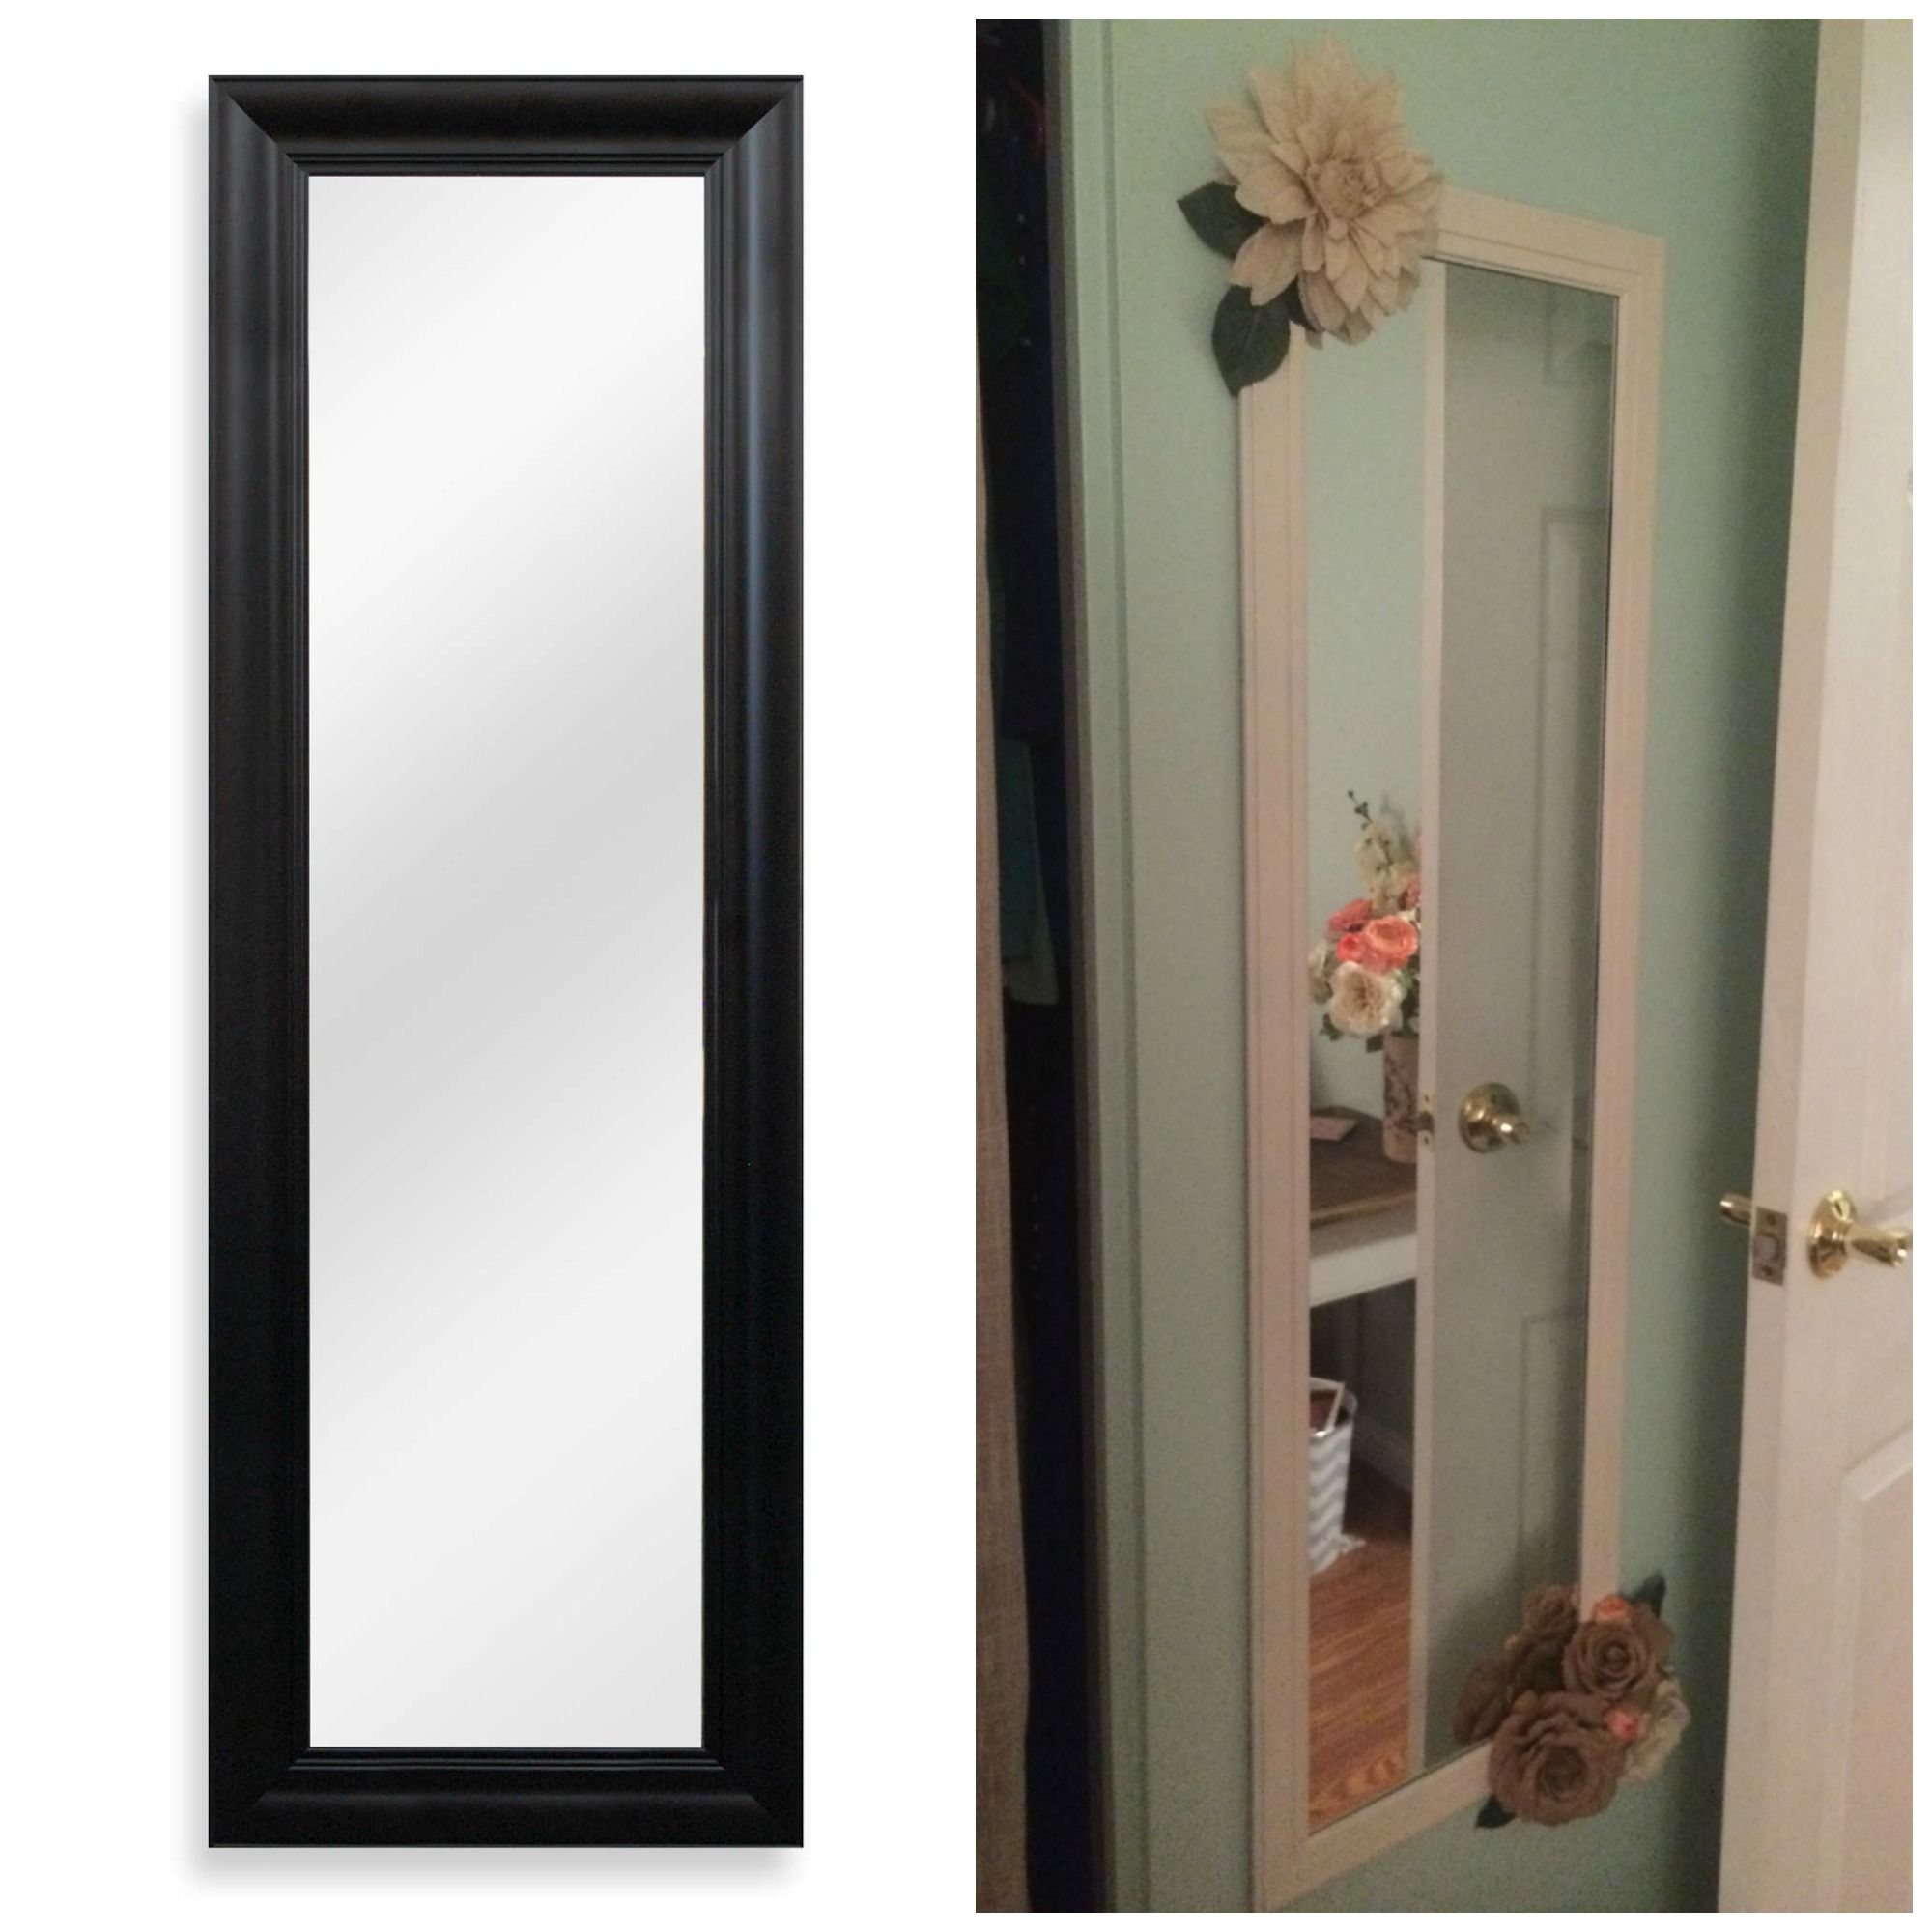 15 Plain Black Mirror From Big Lots Spray Painted Cream With